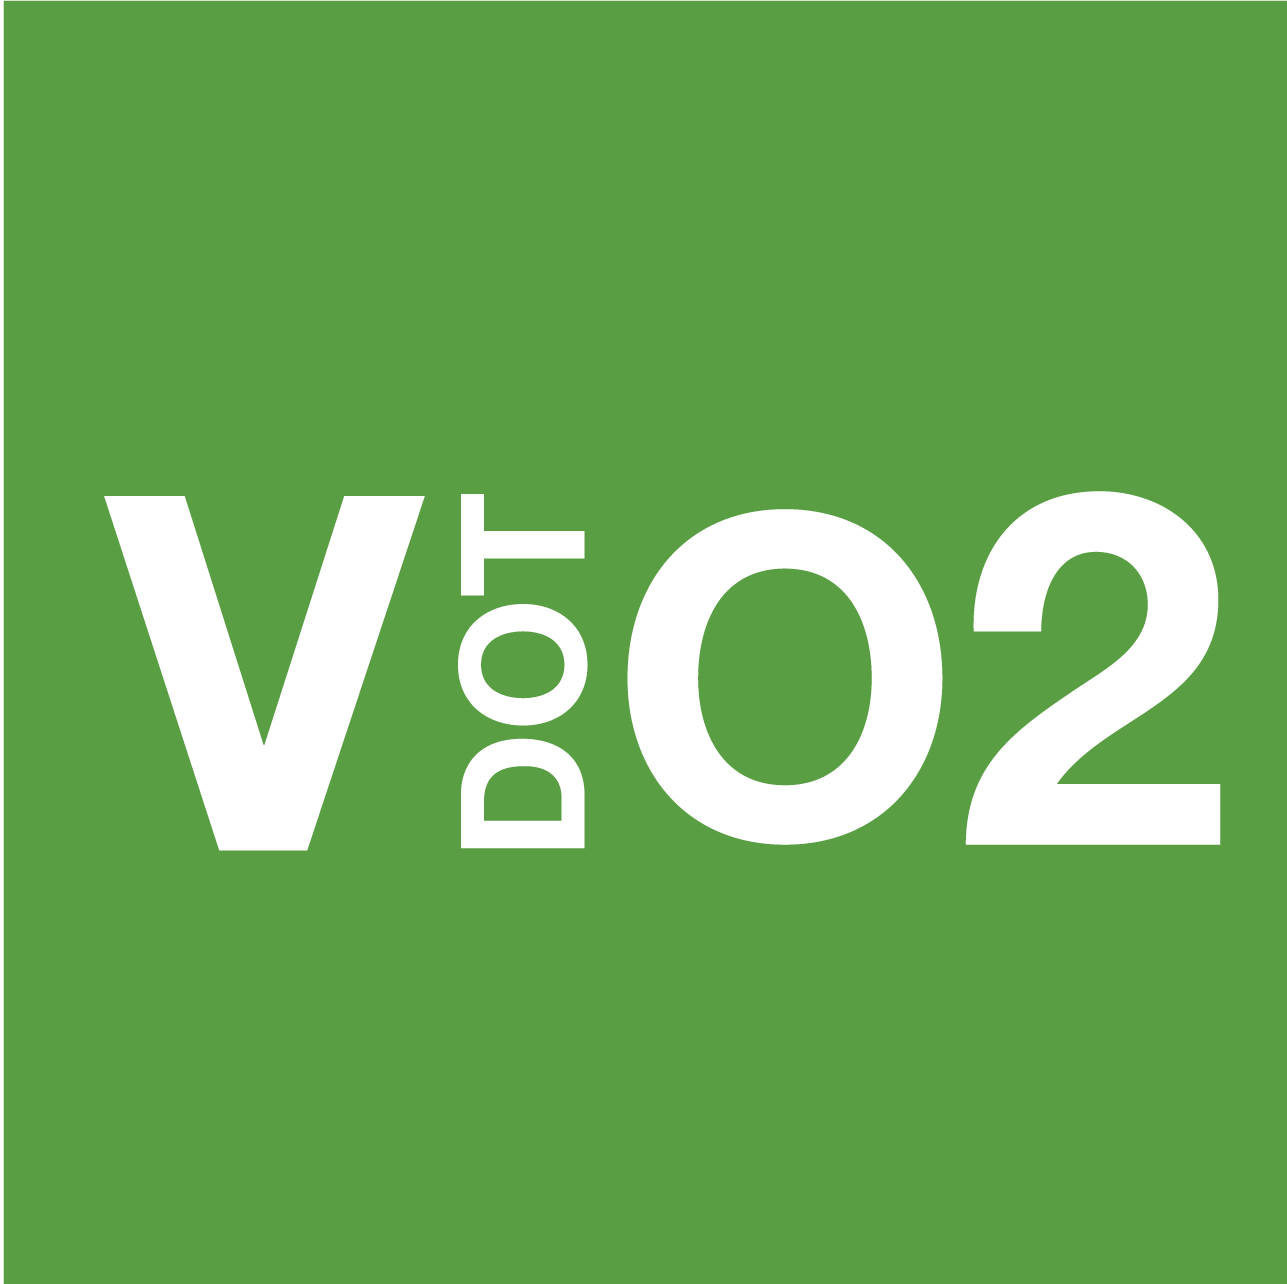 Vdot o2 run smart vdot calculator on android buycottarizona Image collections